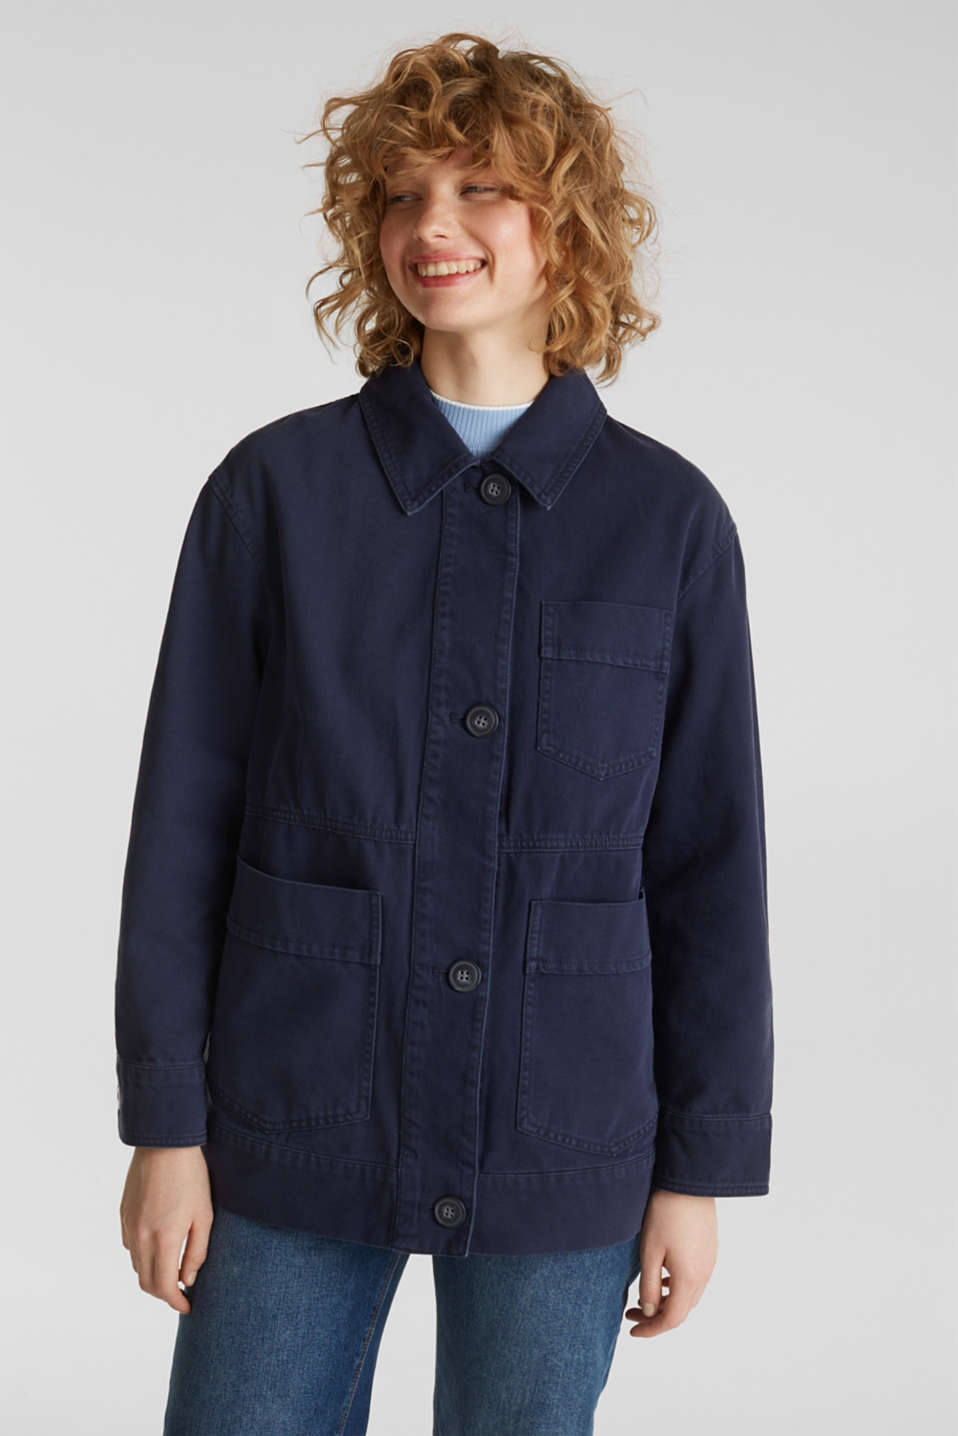 edc - Worker jacket with pockets, 100% cotton